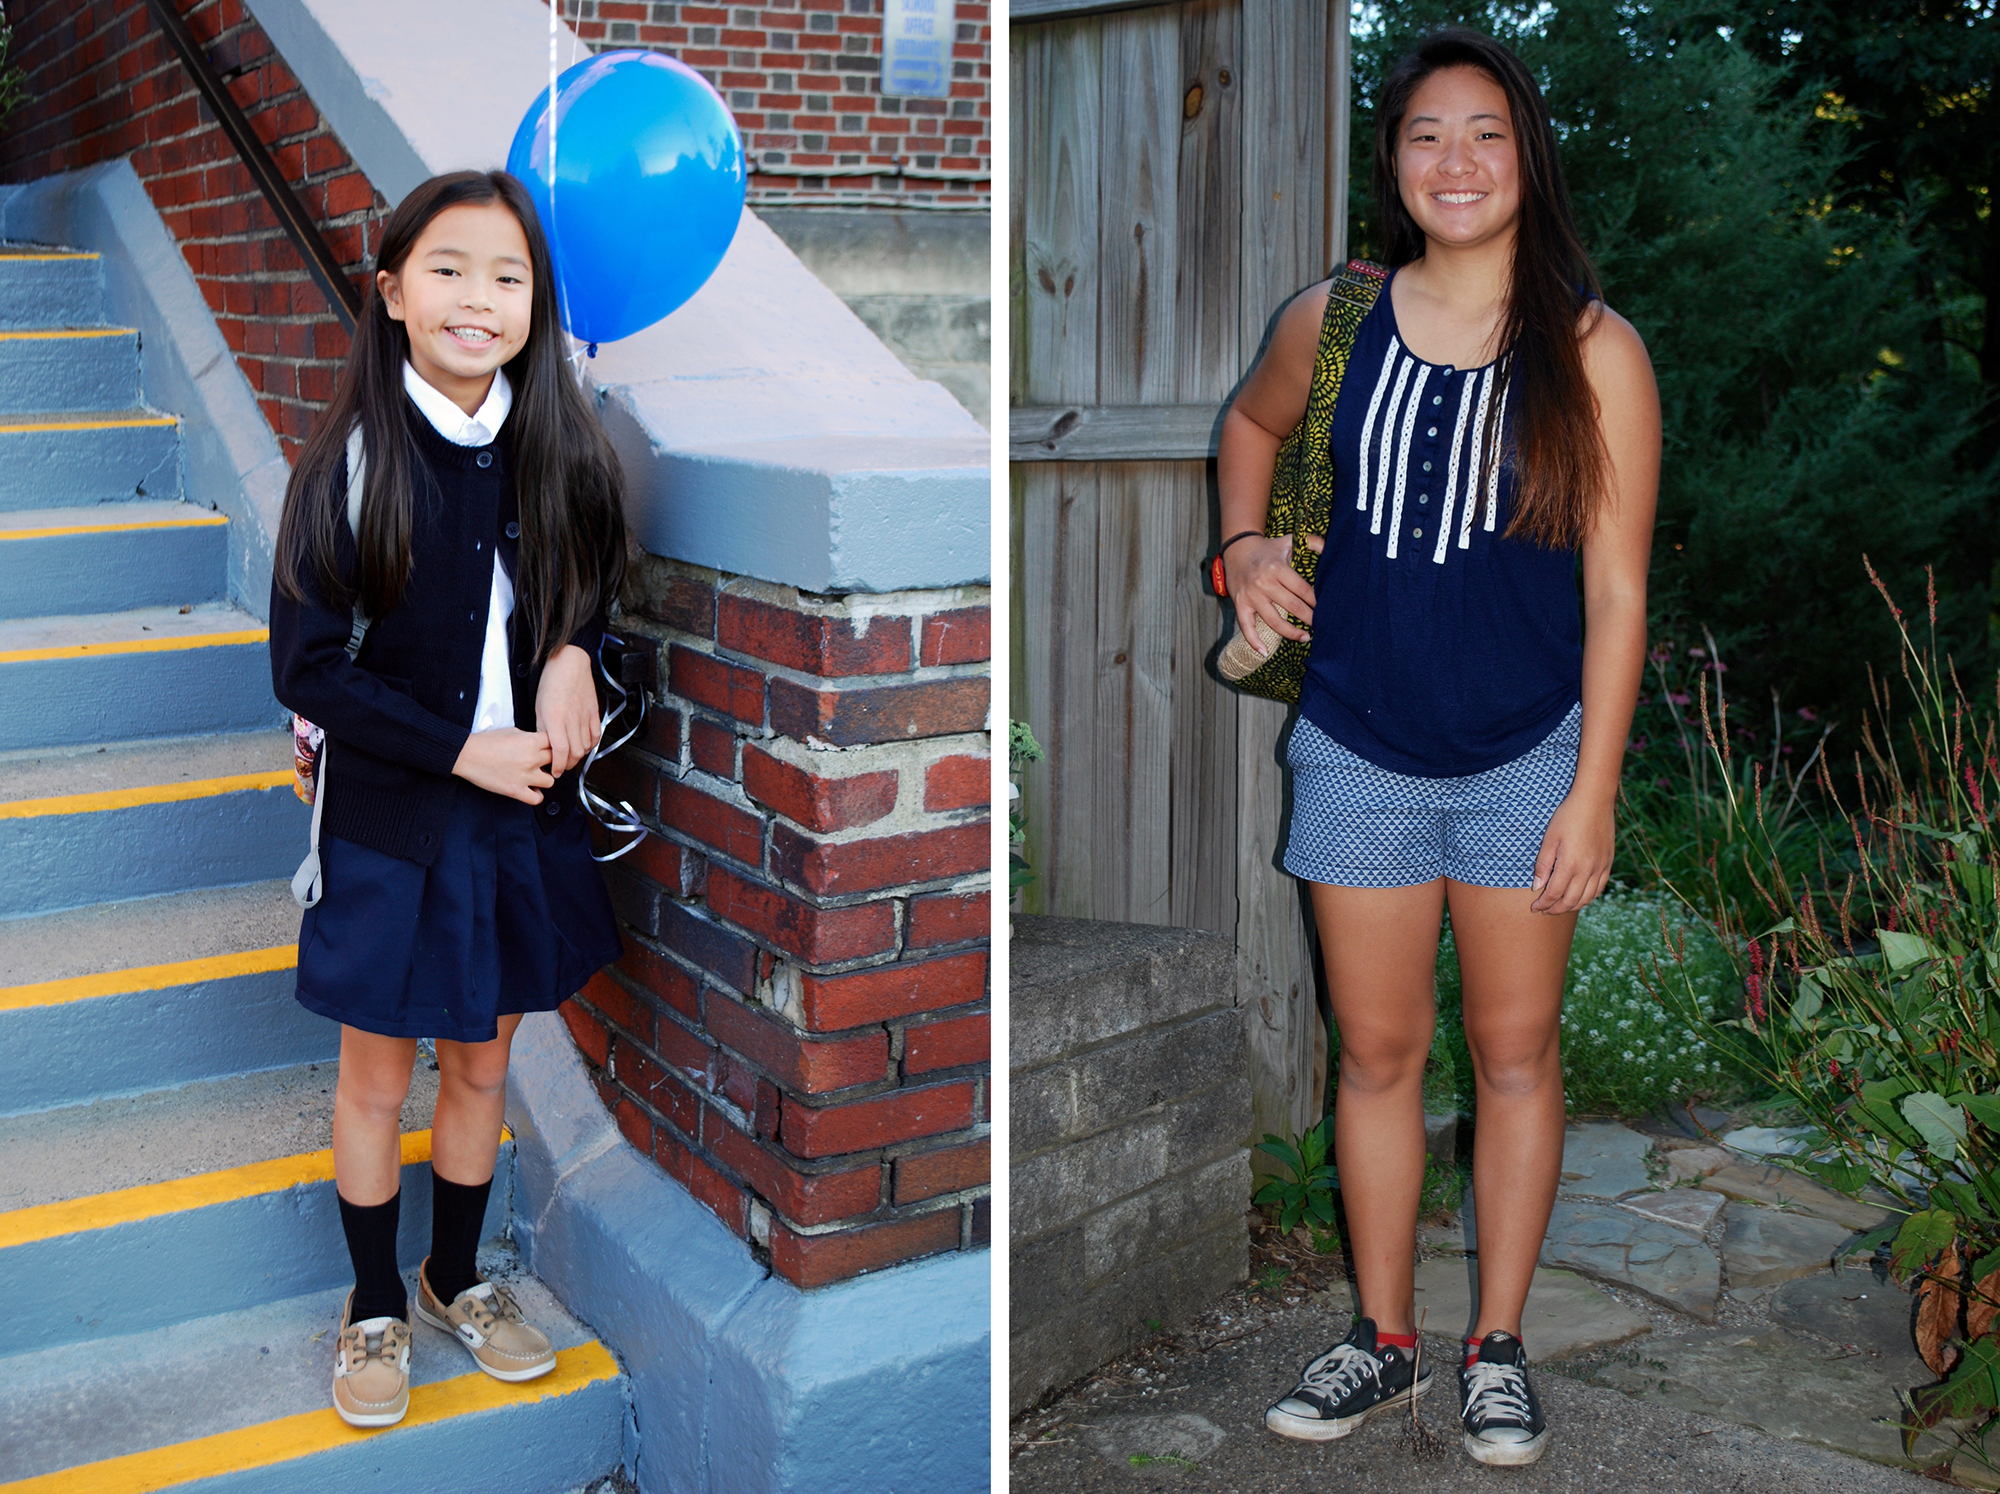 The Gallick girls pictured on their first days of school this August. Libby Gallick (left), 9, entered 4th grade at Assumption School in August. Zofia Gallick, 14, started high school this year at Northgate. (Photos courtesy Theresa Gallick)